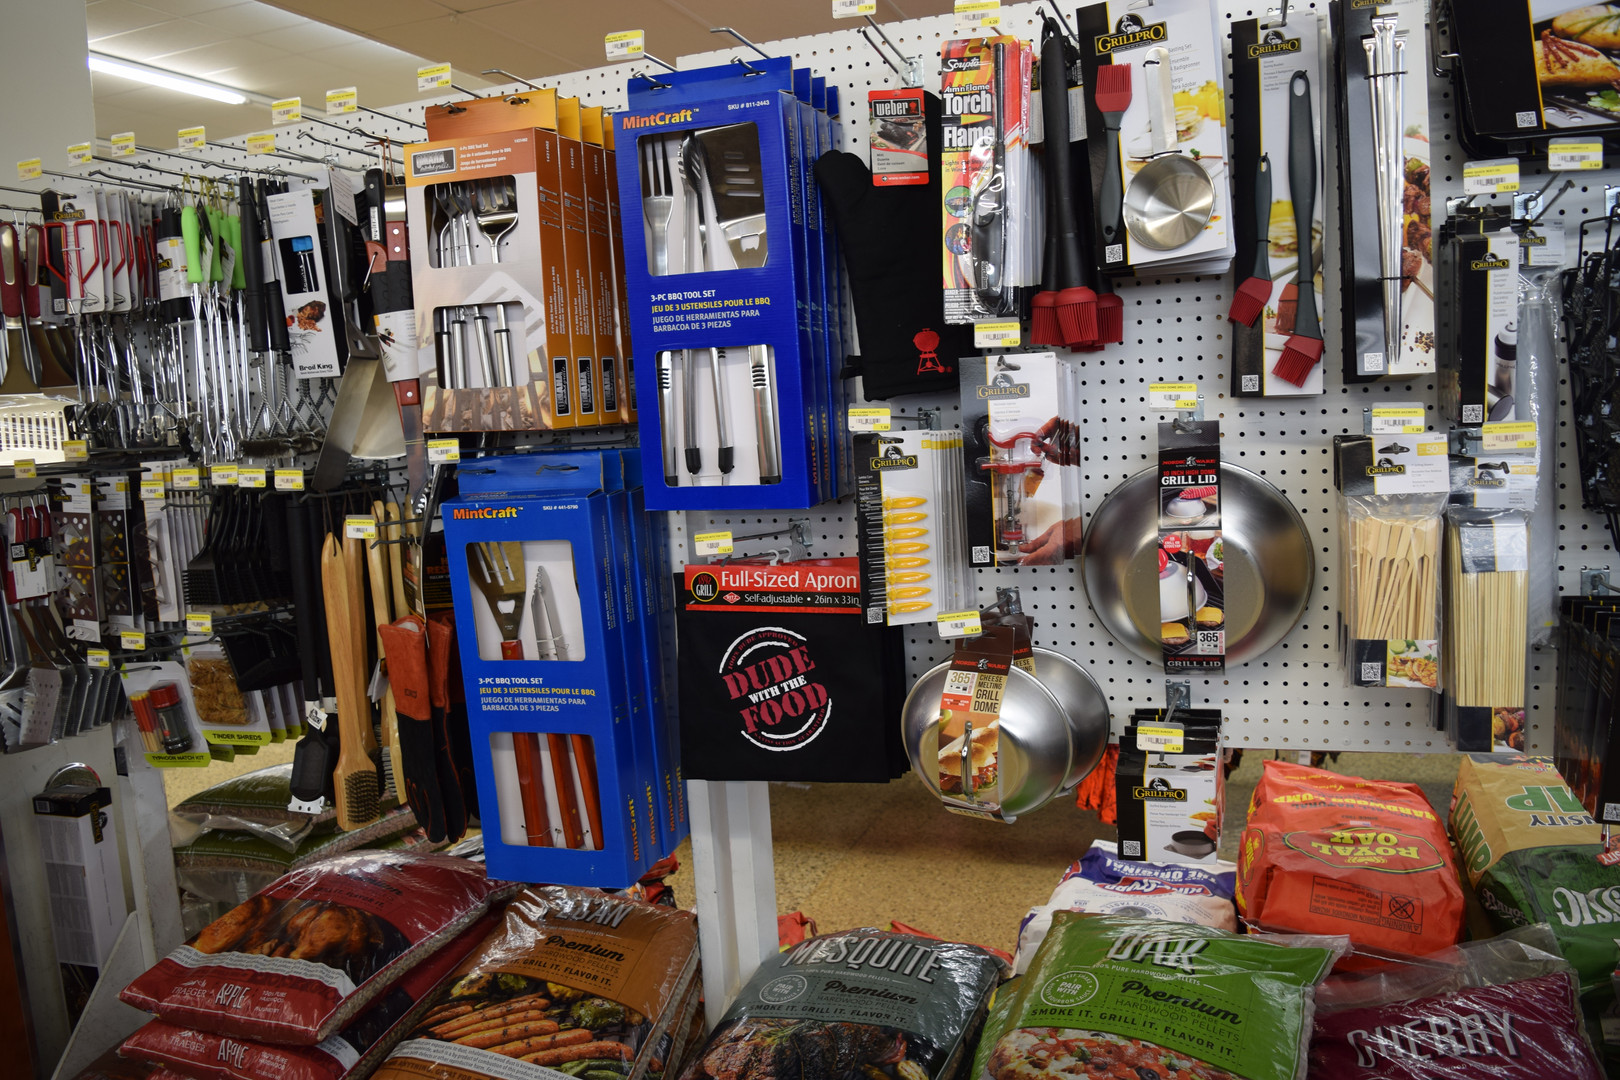 Grilling Supplies